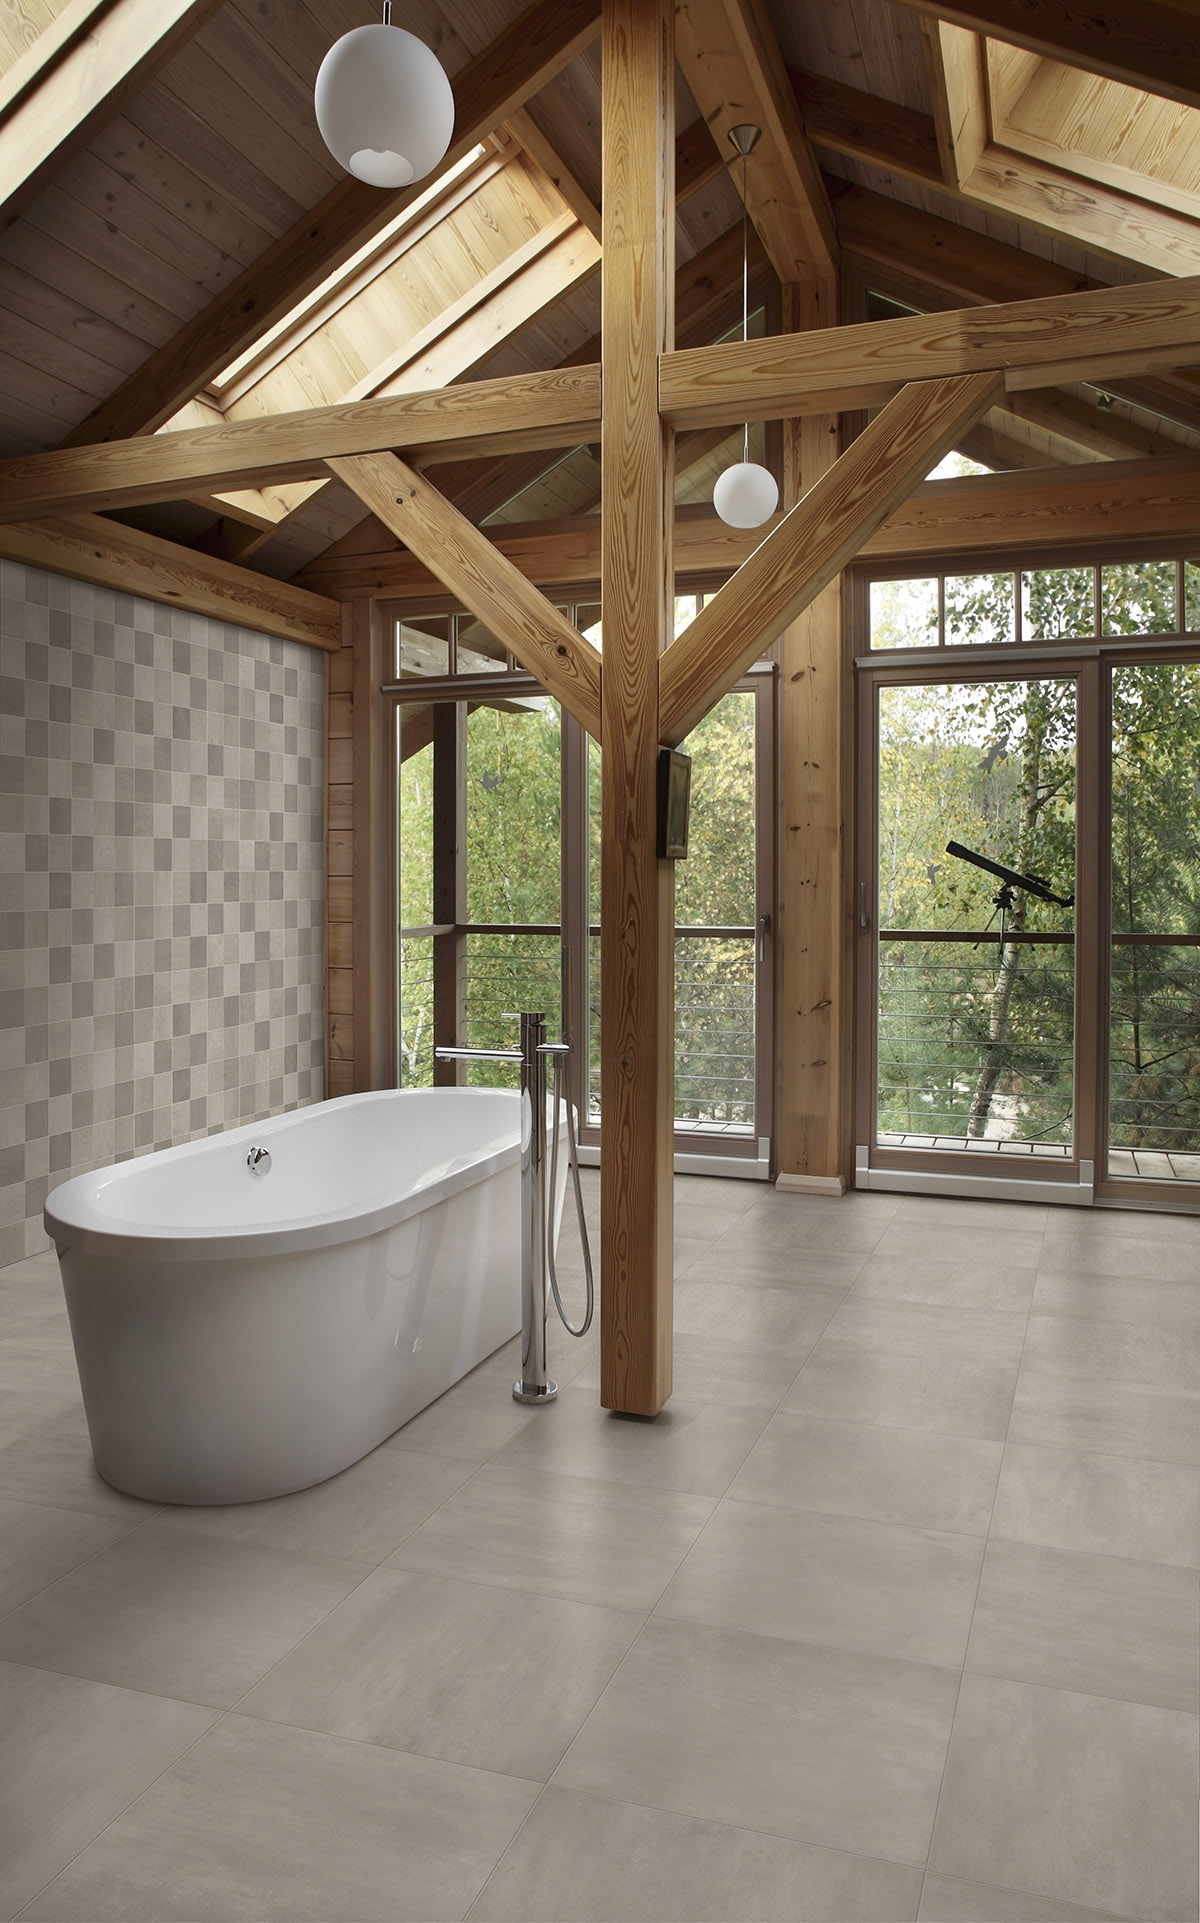 Betongreys terratinta ceramiche for Warm bathroom